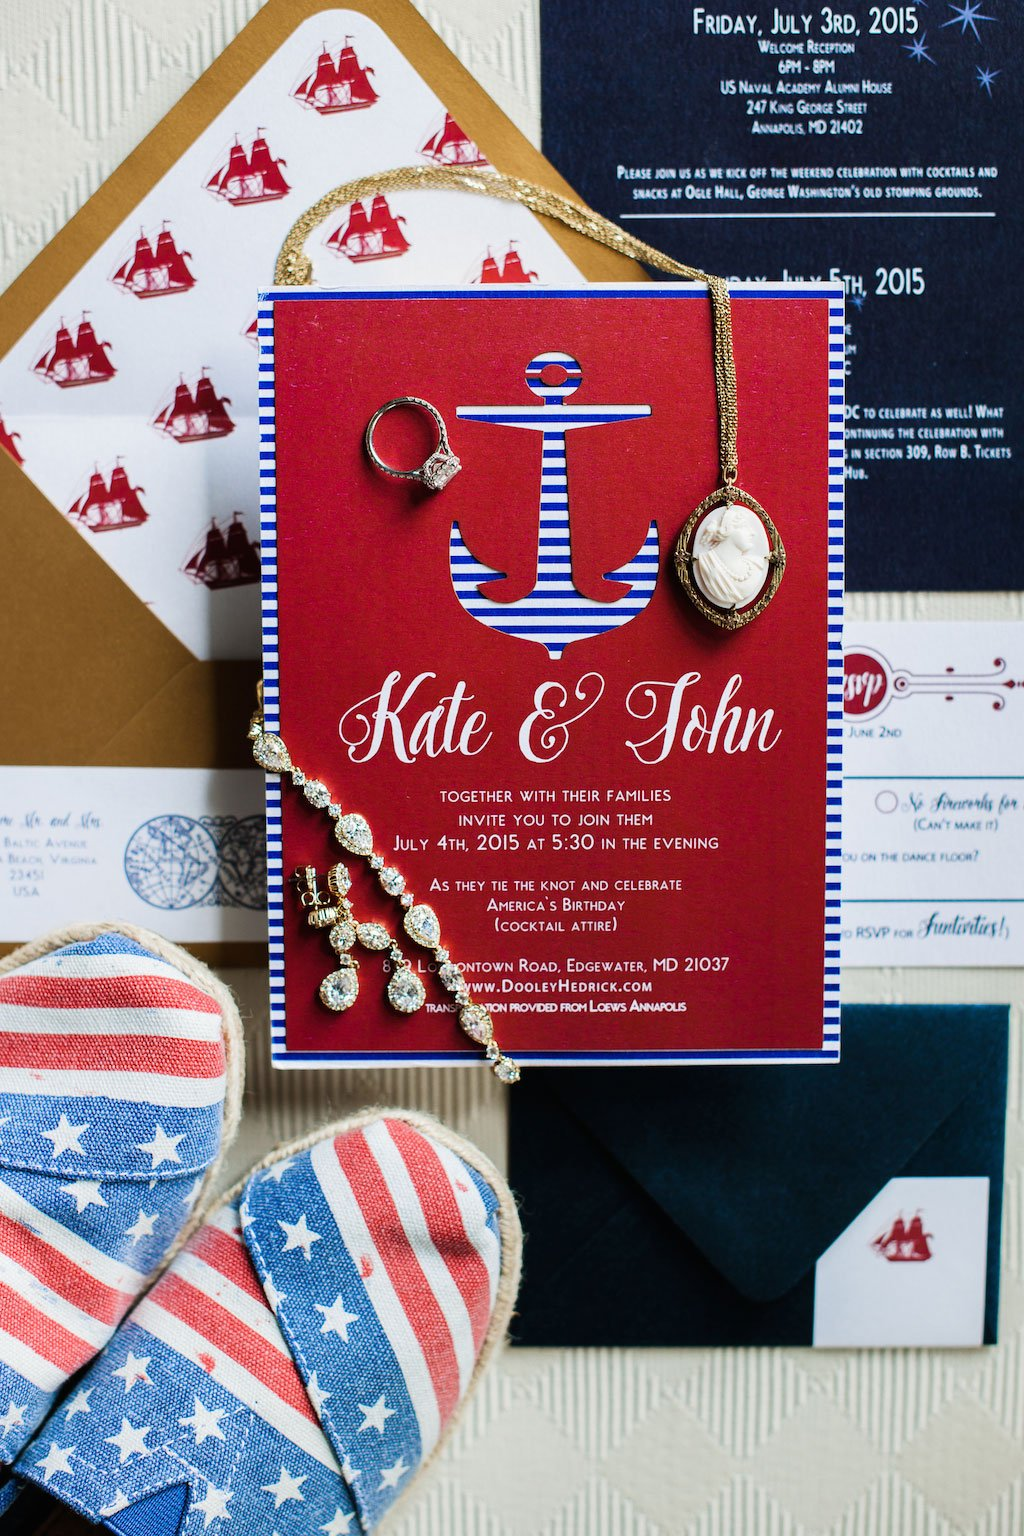 7-1-16-fourth-of-july-red-white-blue-wedding-1